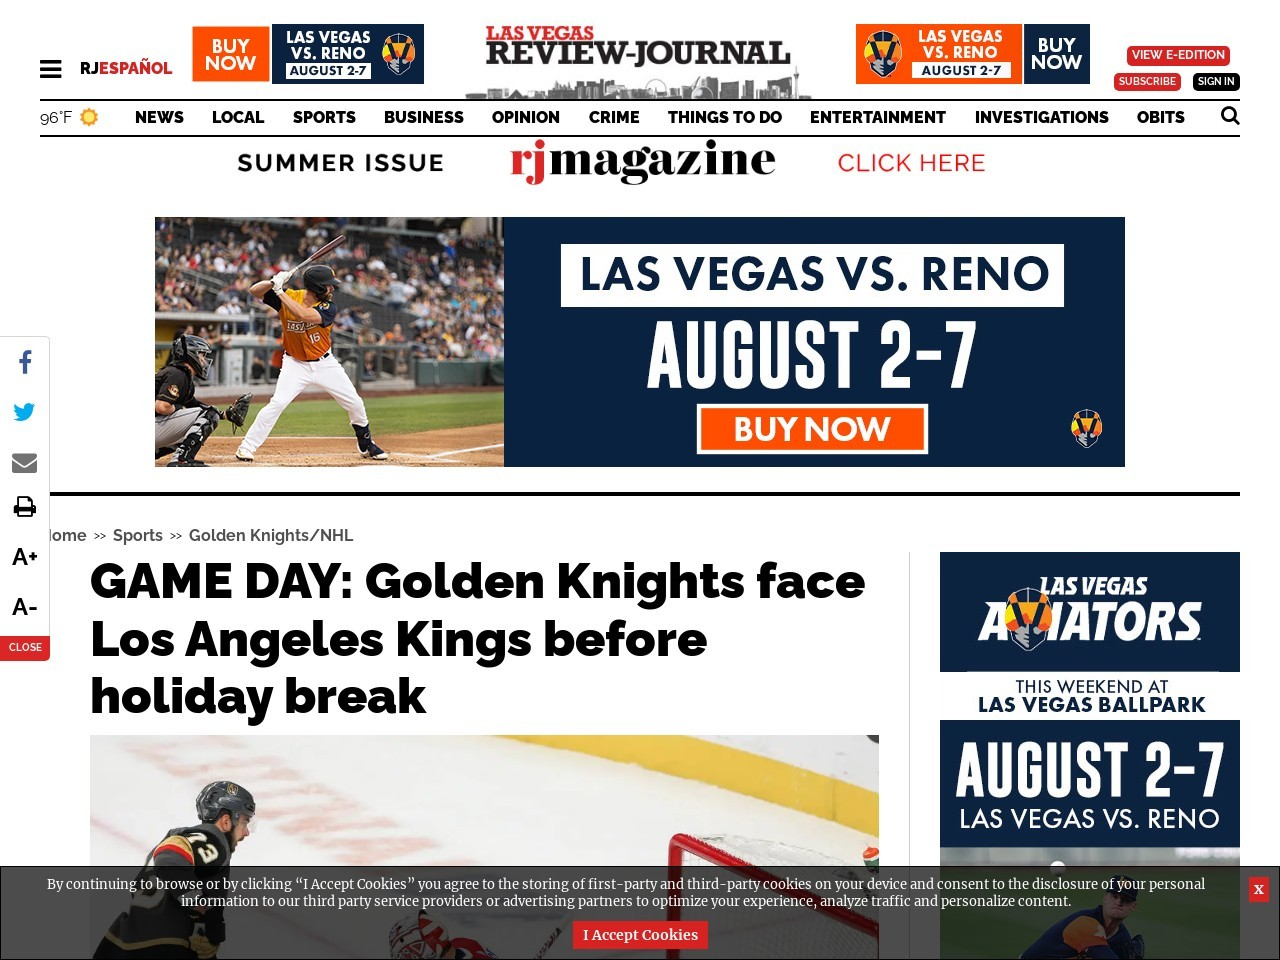 GAME DAY: Golden Knights face Los Angeles Kings before holiday break